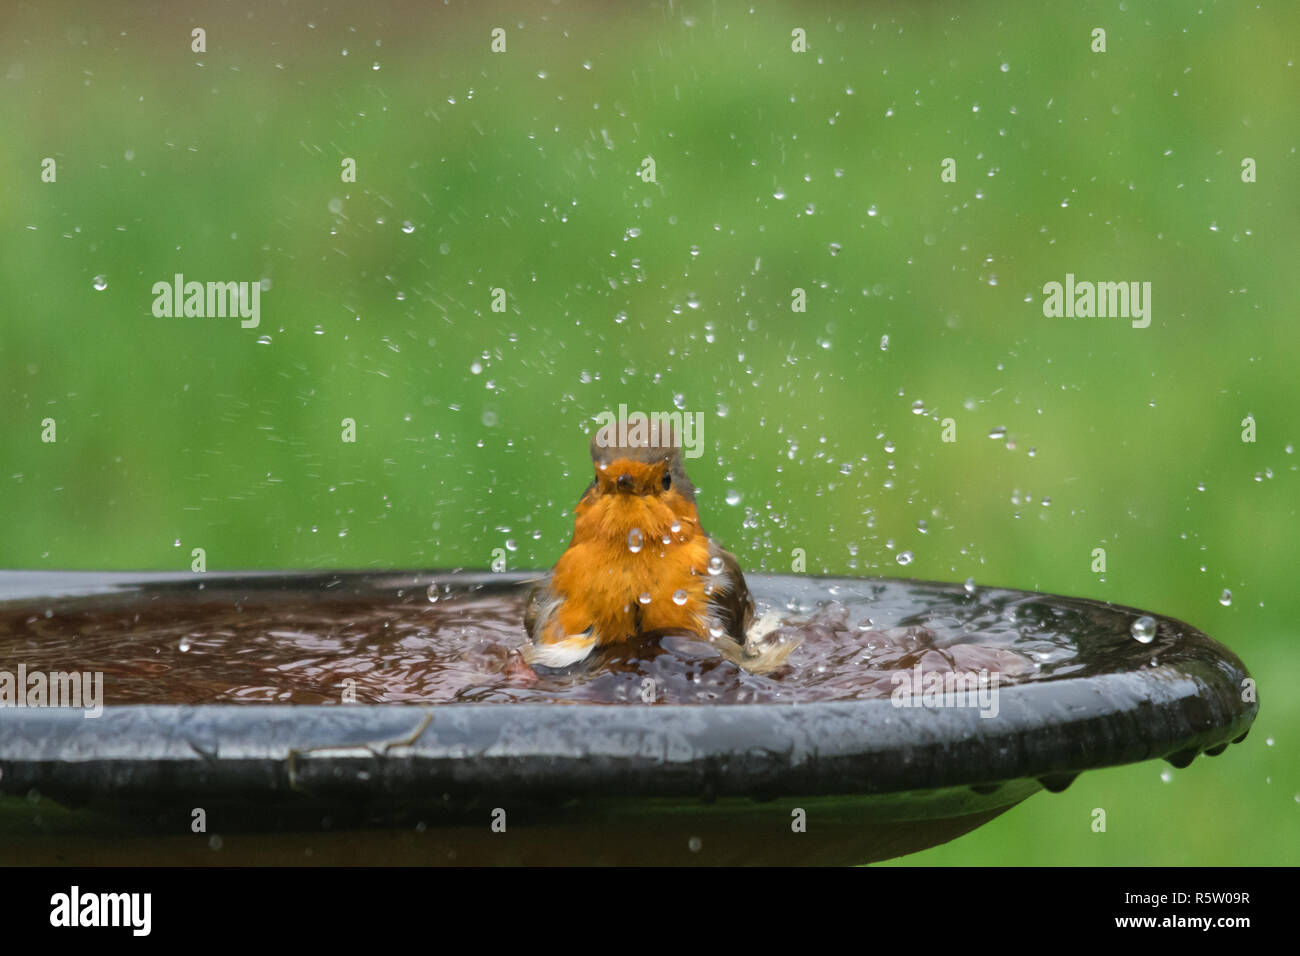 robin-erithacus-rubecula-small-bird-having-a-bath-garden-wildlife-animal-humour-humor-R5W09R.jpg